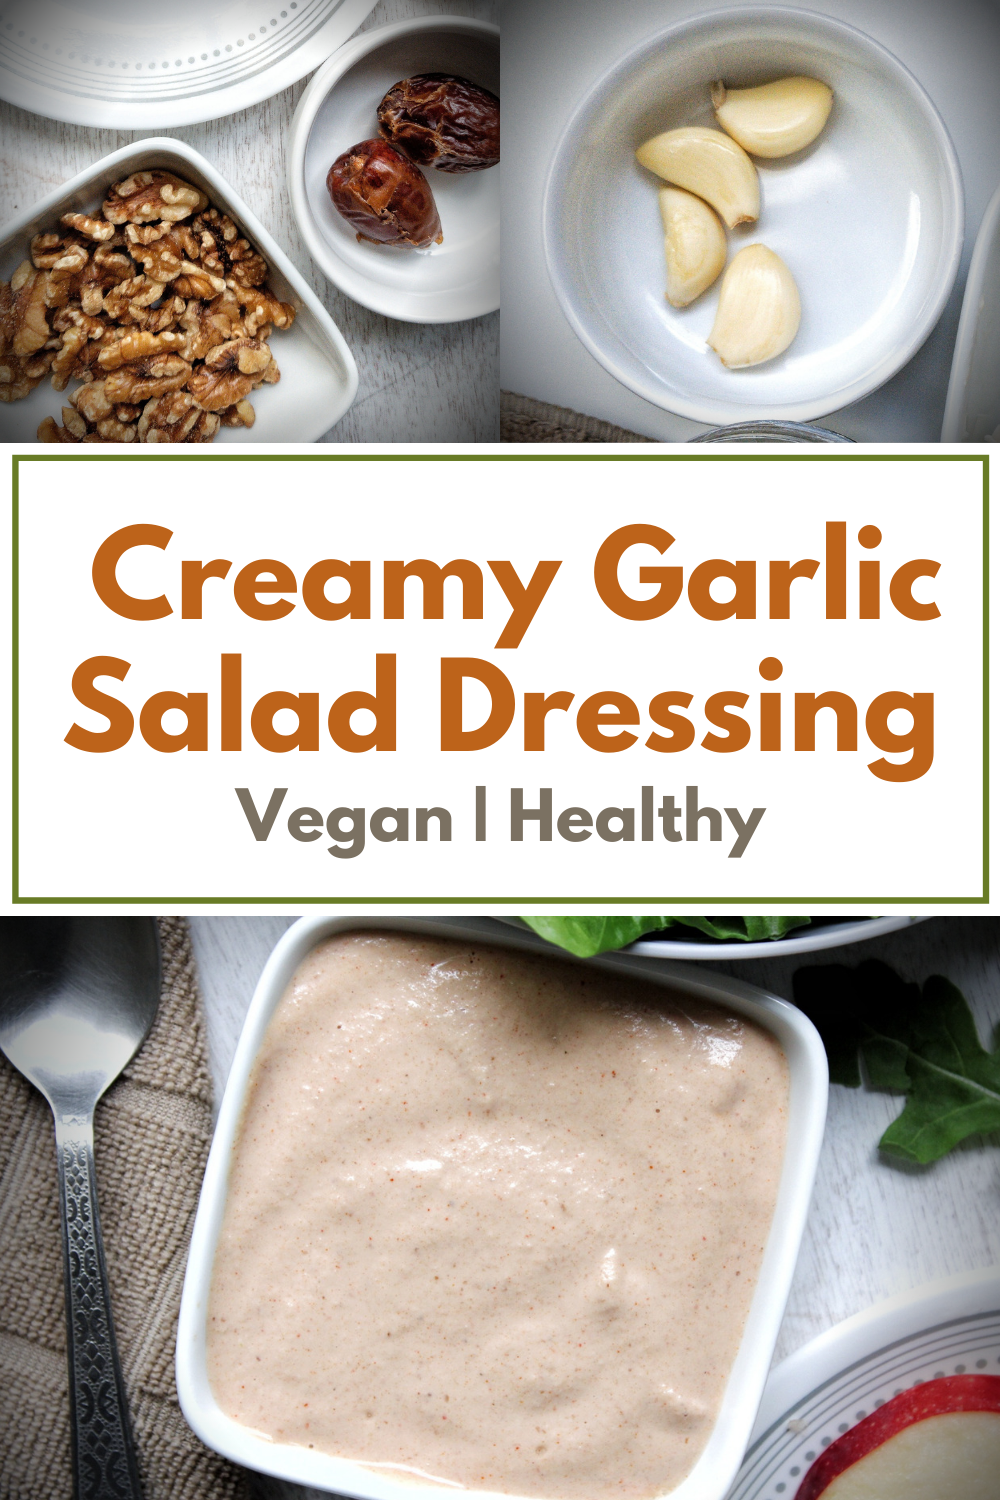 Pinnable for Pinterest. Collage for garlic salad dressing